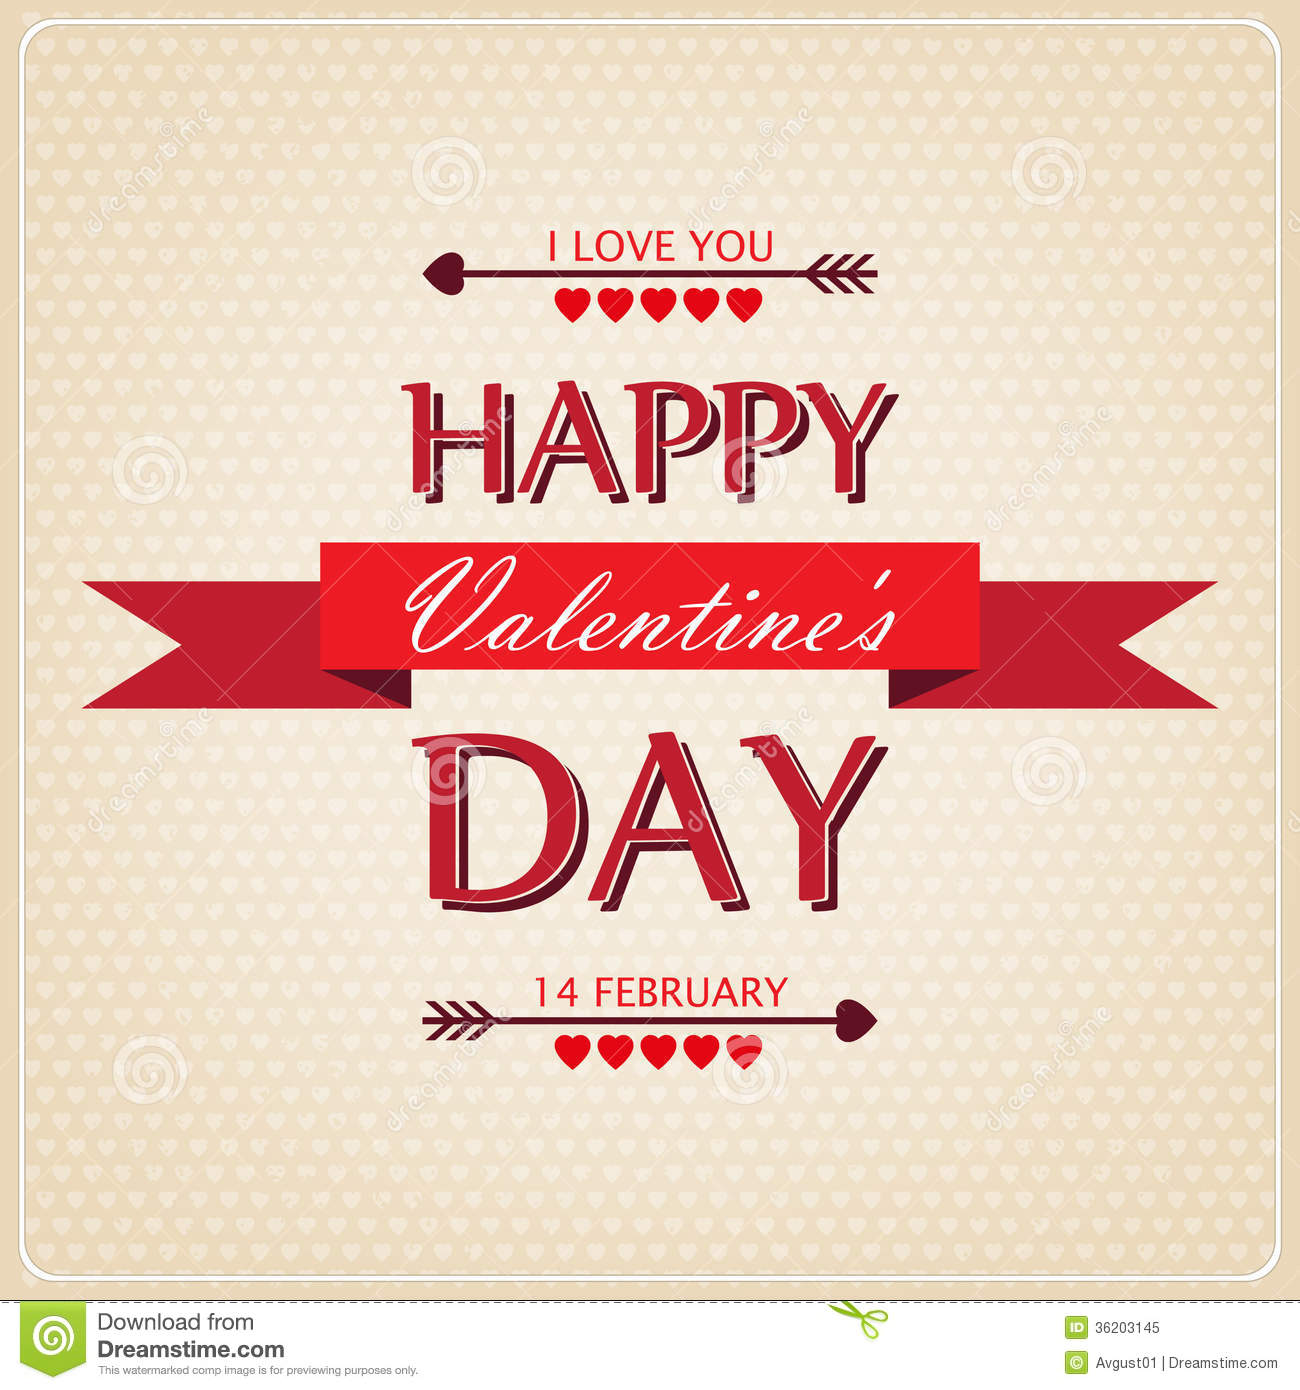 Happy Valentines Day Card With Ornaments Hearts A Royalty Free – Beautiful Valentine Day Cards